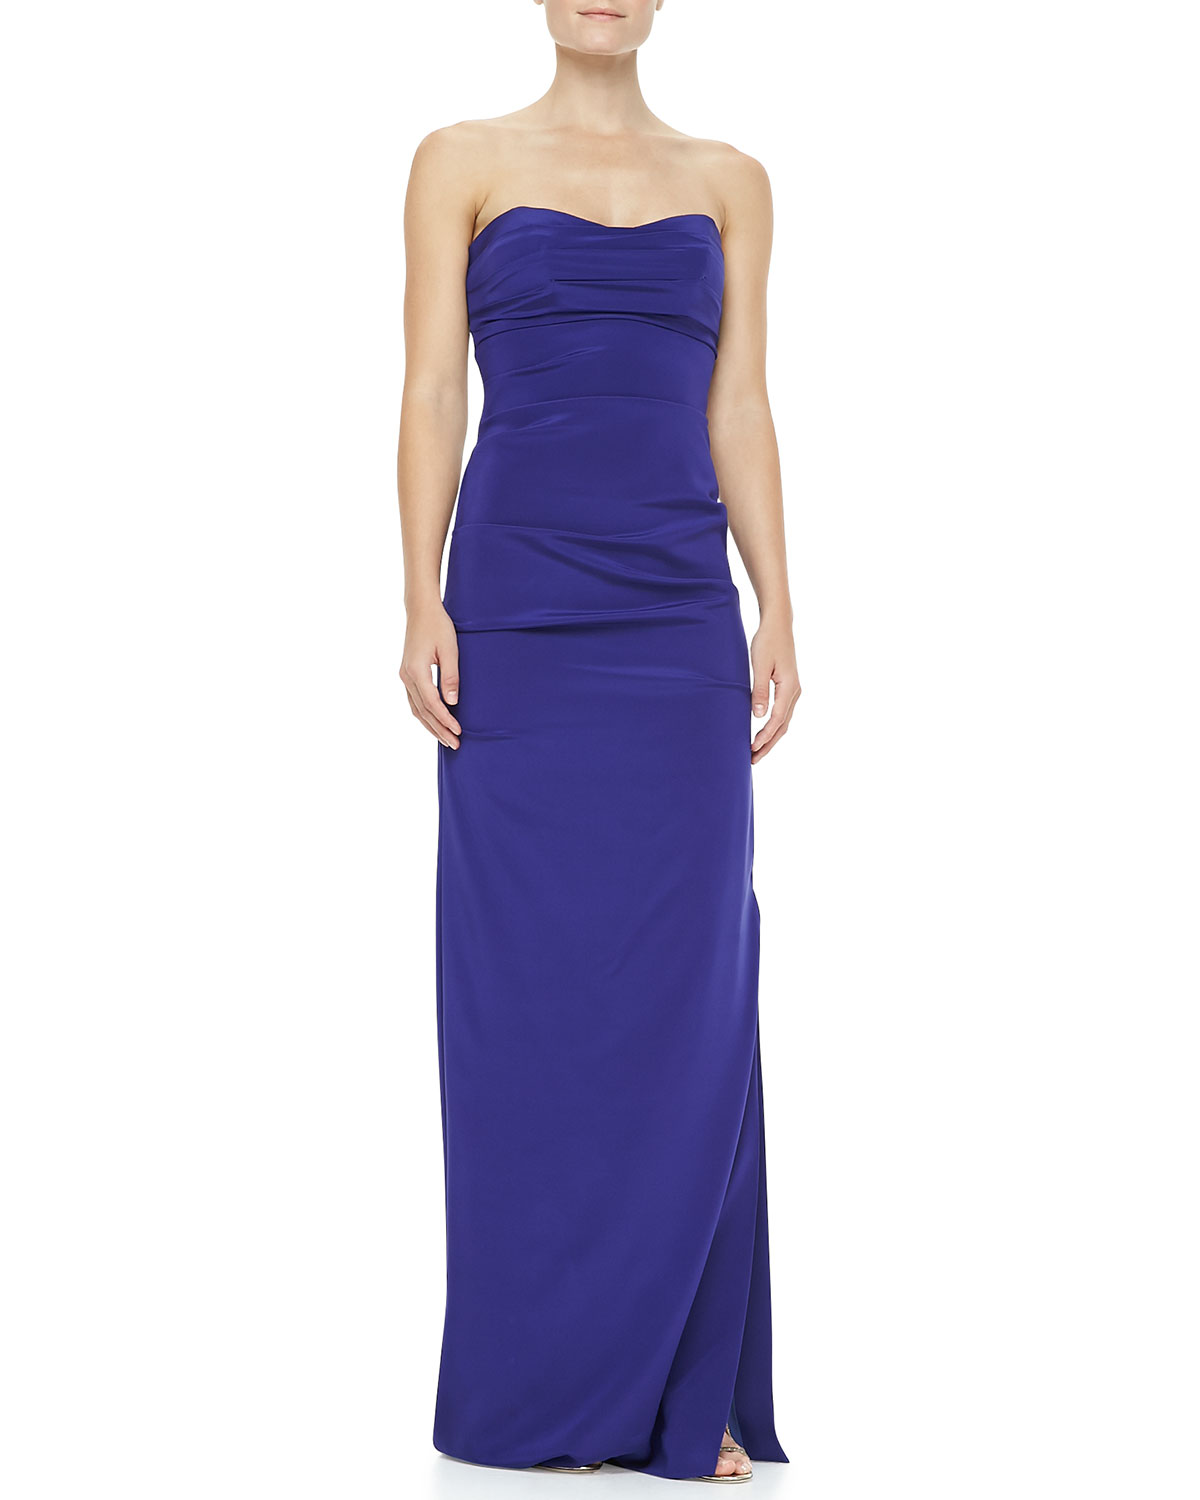 Womens Ruched Strapless Stretch Silk Gown   Nicole Miller   Electric blue (0)